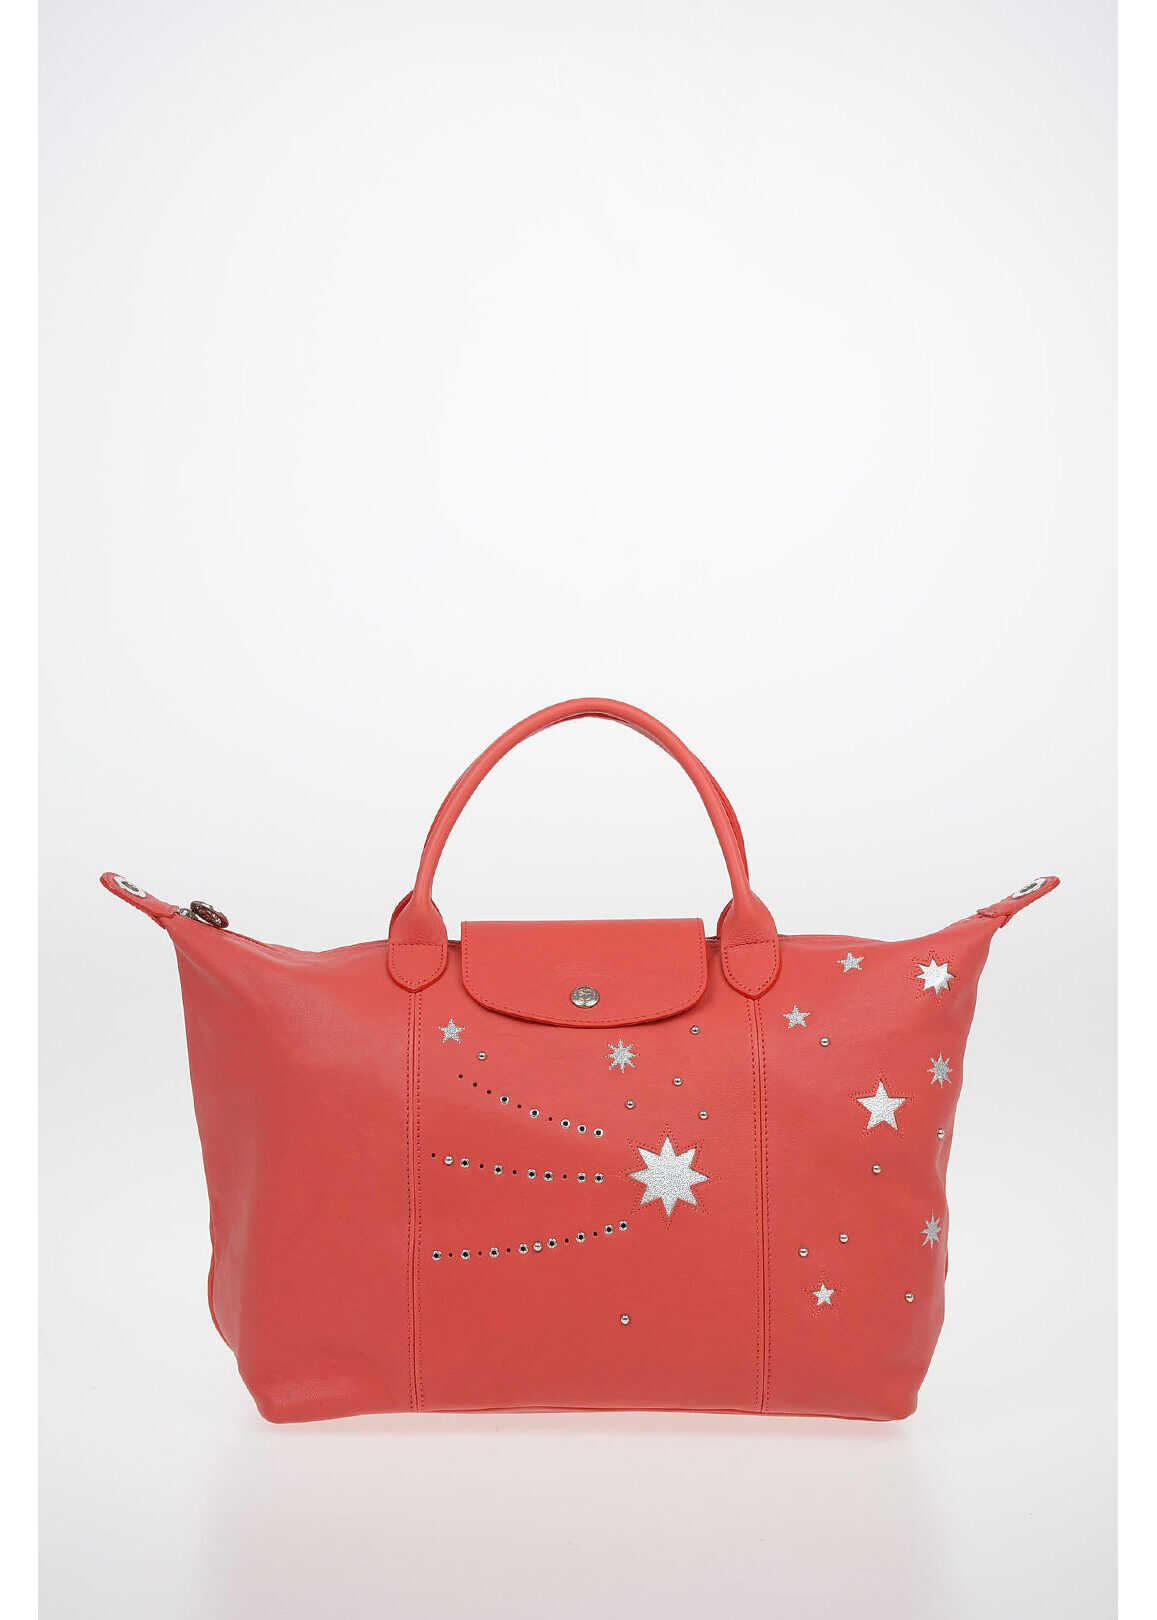 Longchamp Stars Patterned Leather Tote Bag with Removable Shoulder Str RED imagine b-mall.ro